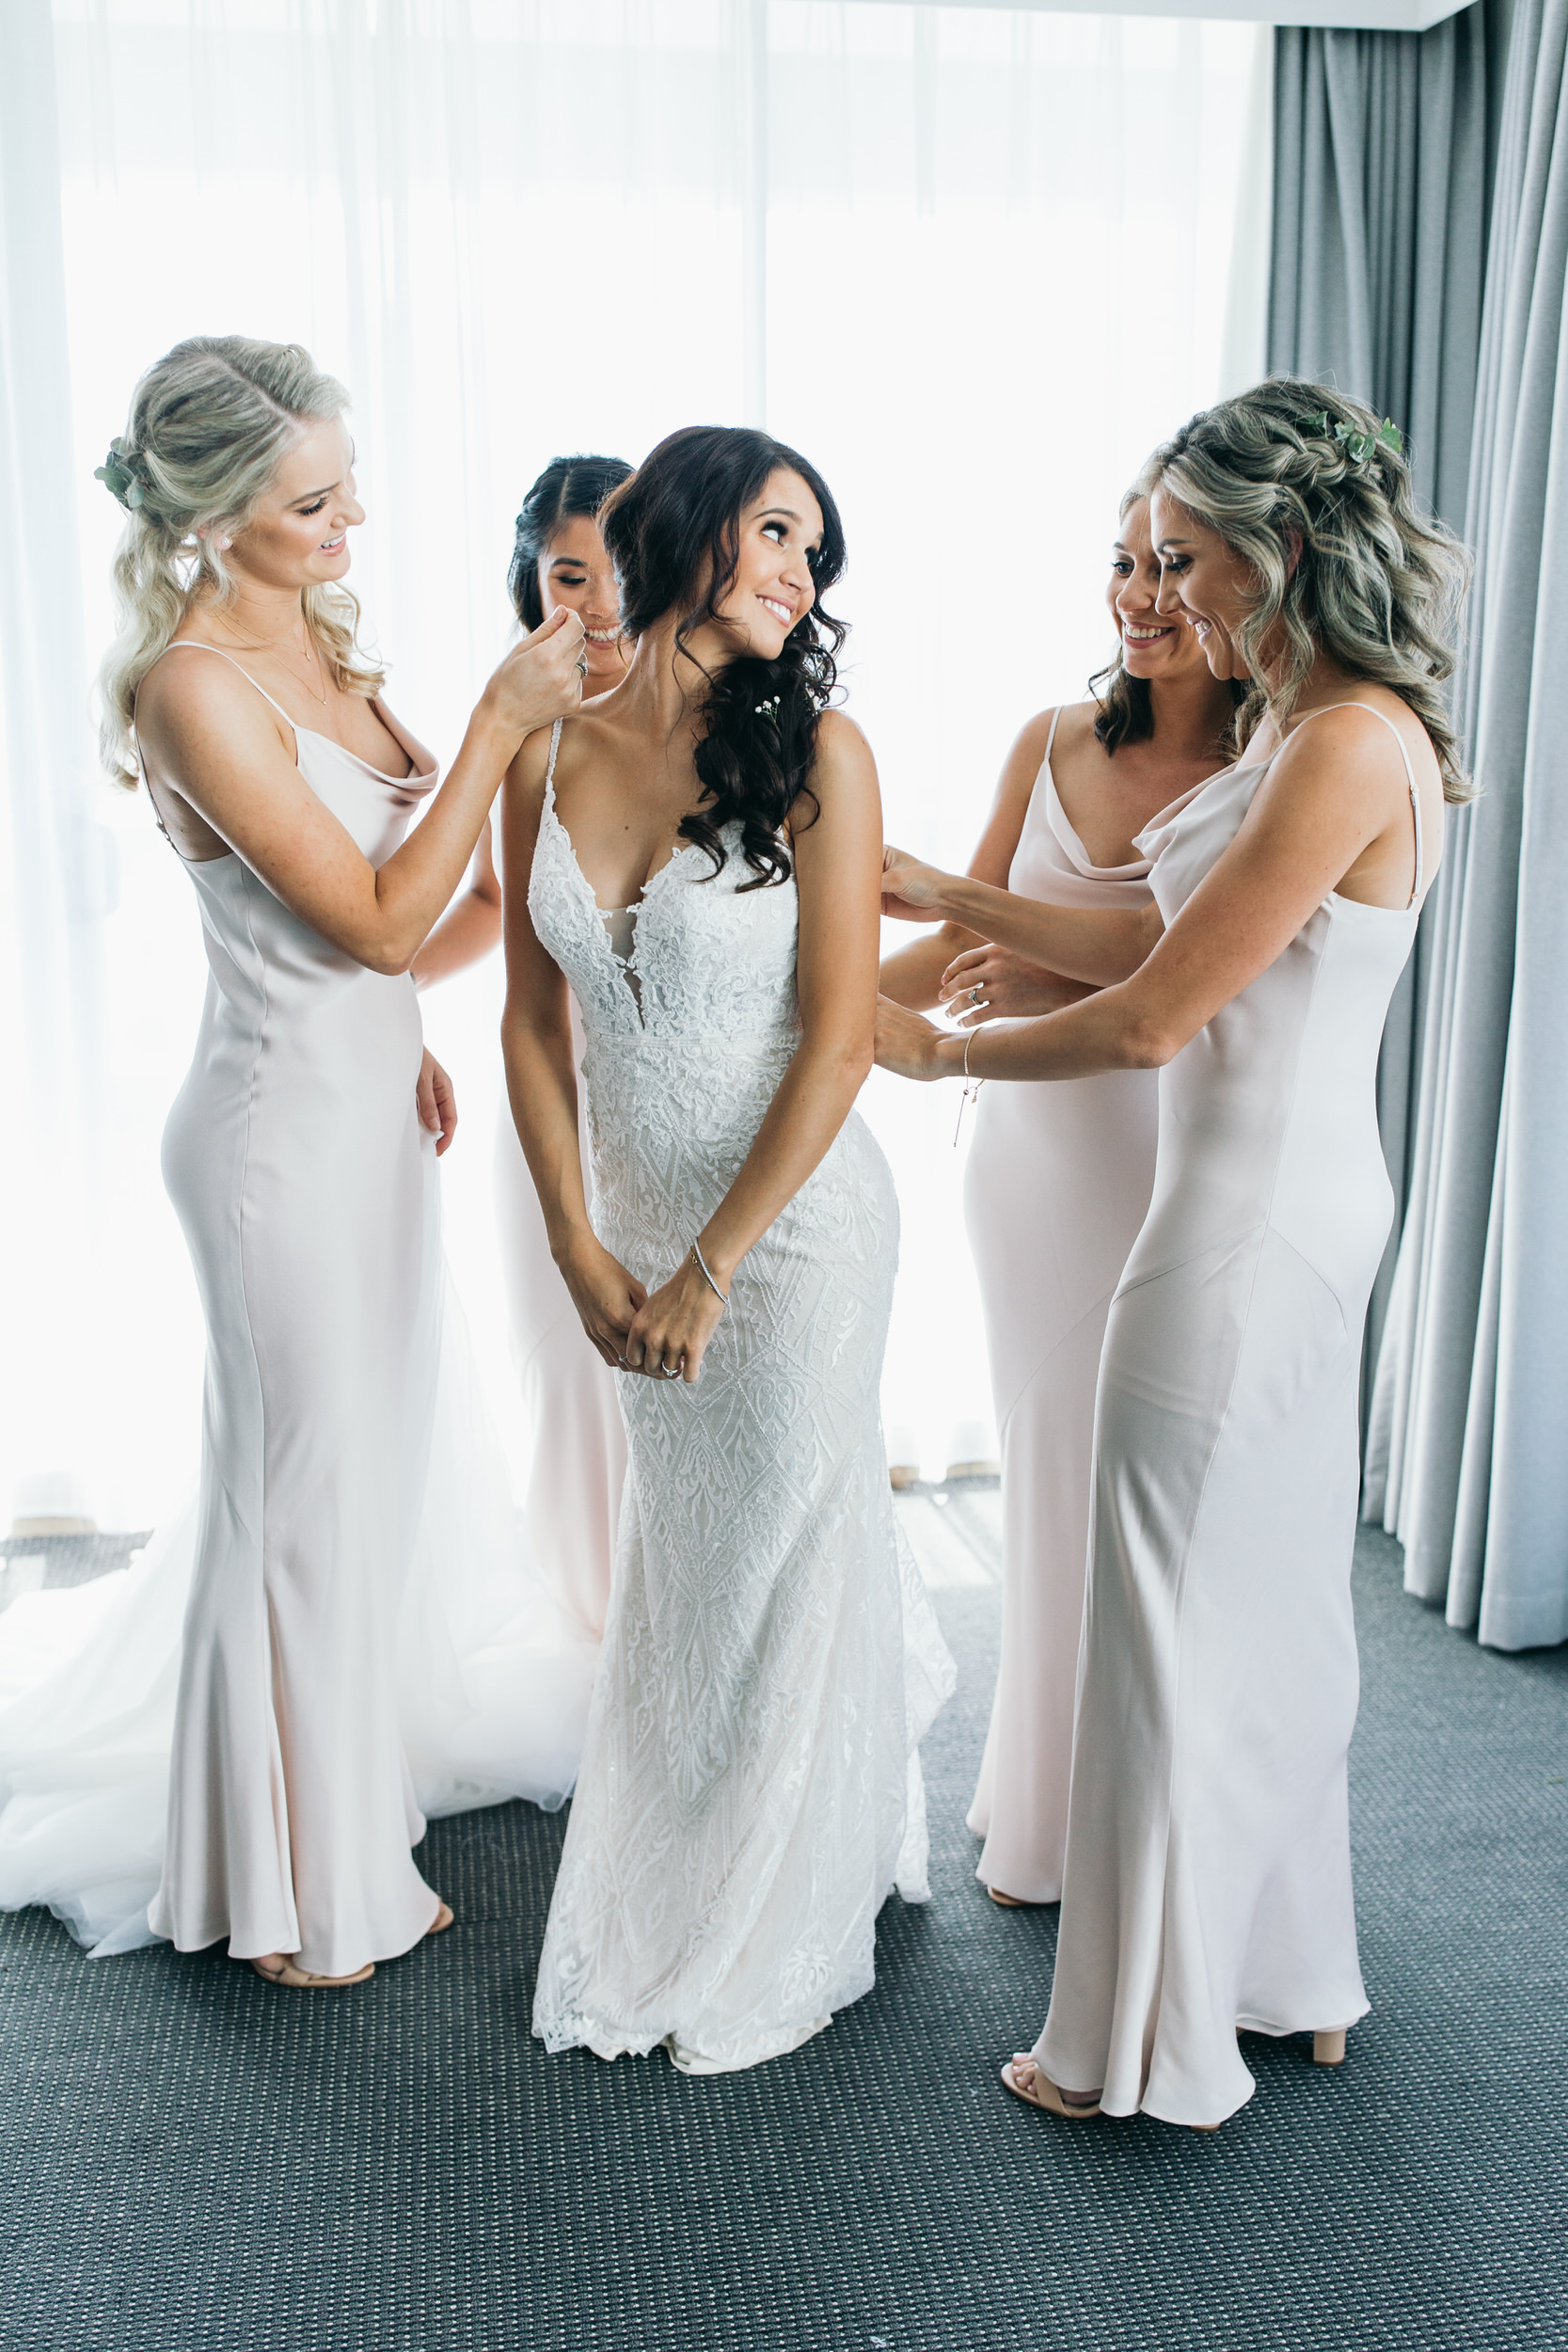 Bride wedding morning wedding dress bridesmaids